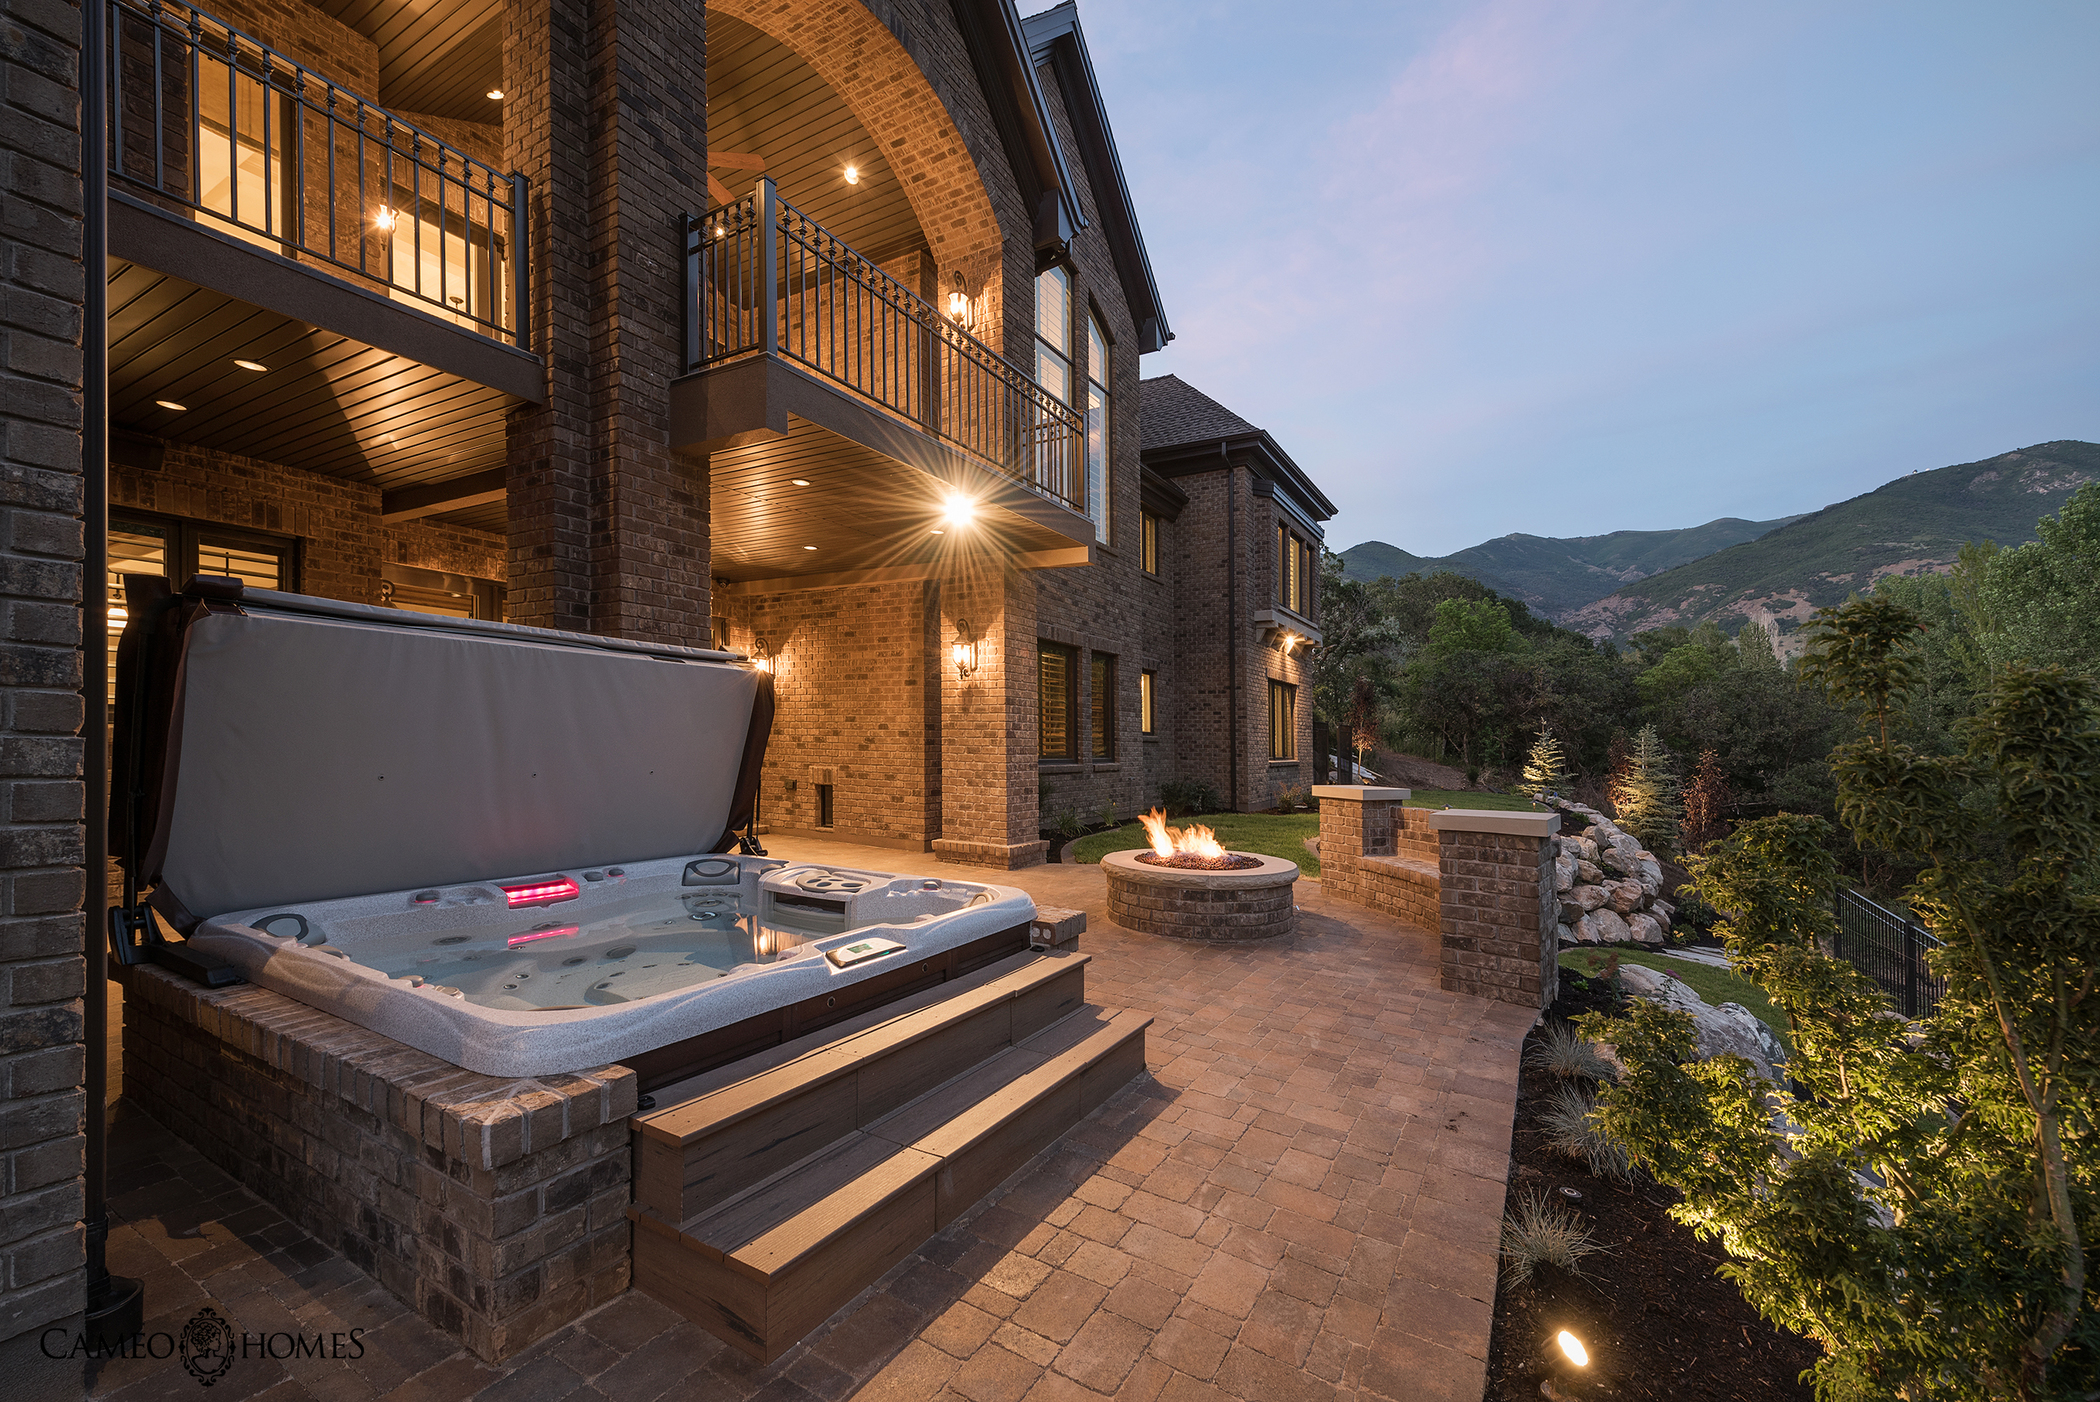 Hot tub outside beautiful mansion.